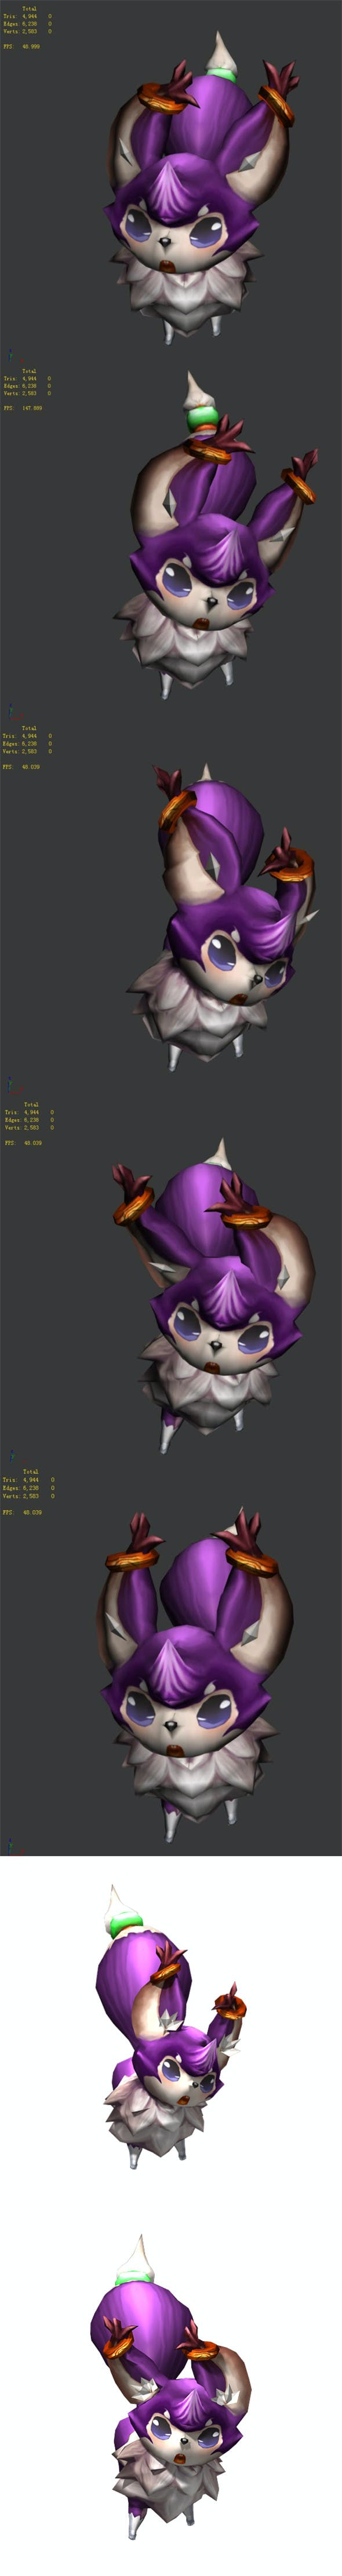 Game animated characters - small foxes - 3DOcean Item for Sale